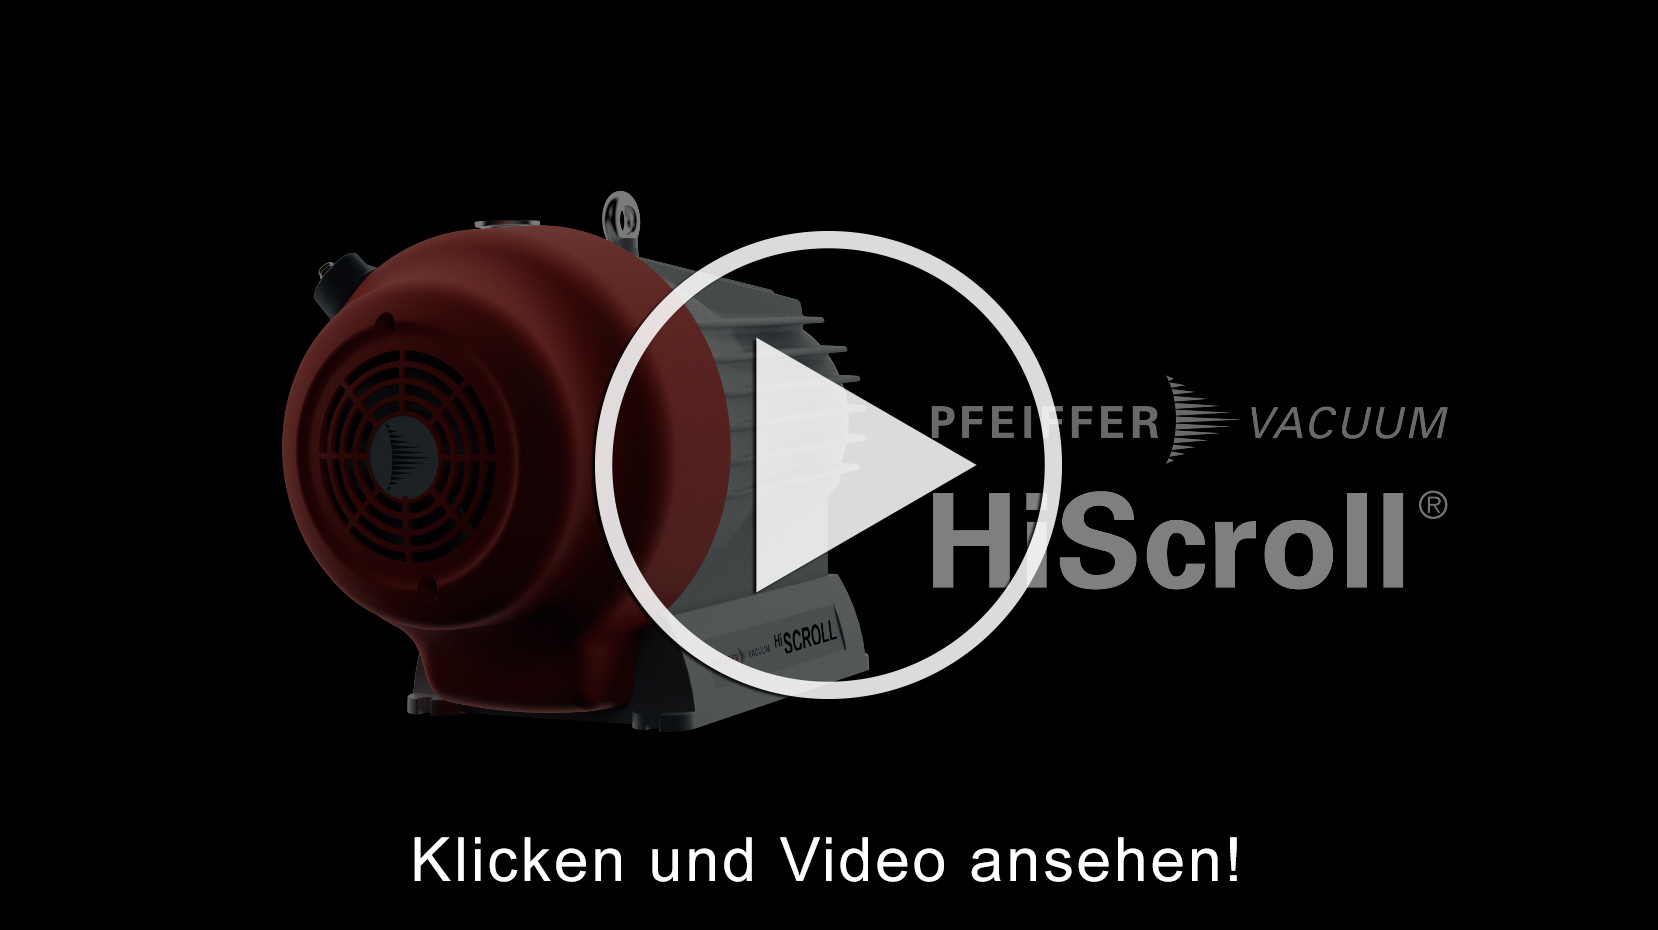 Pfeiffer HiScroll Pumpen Video